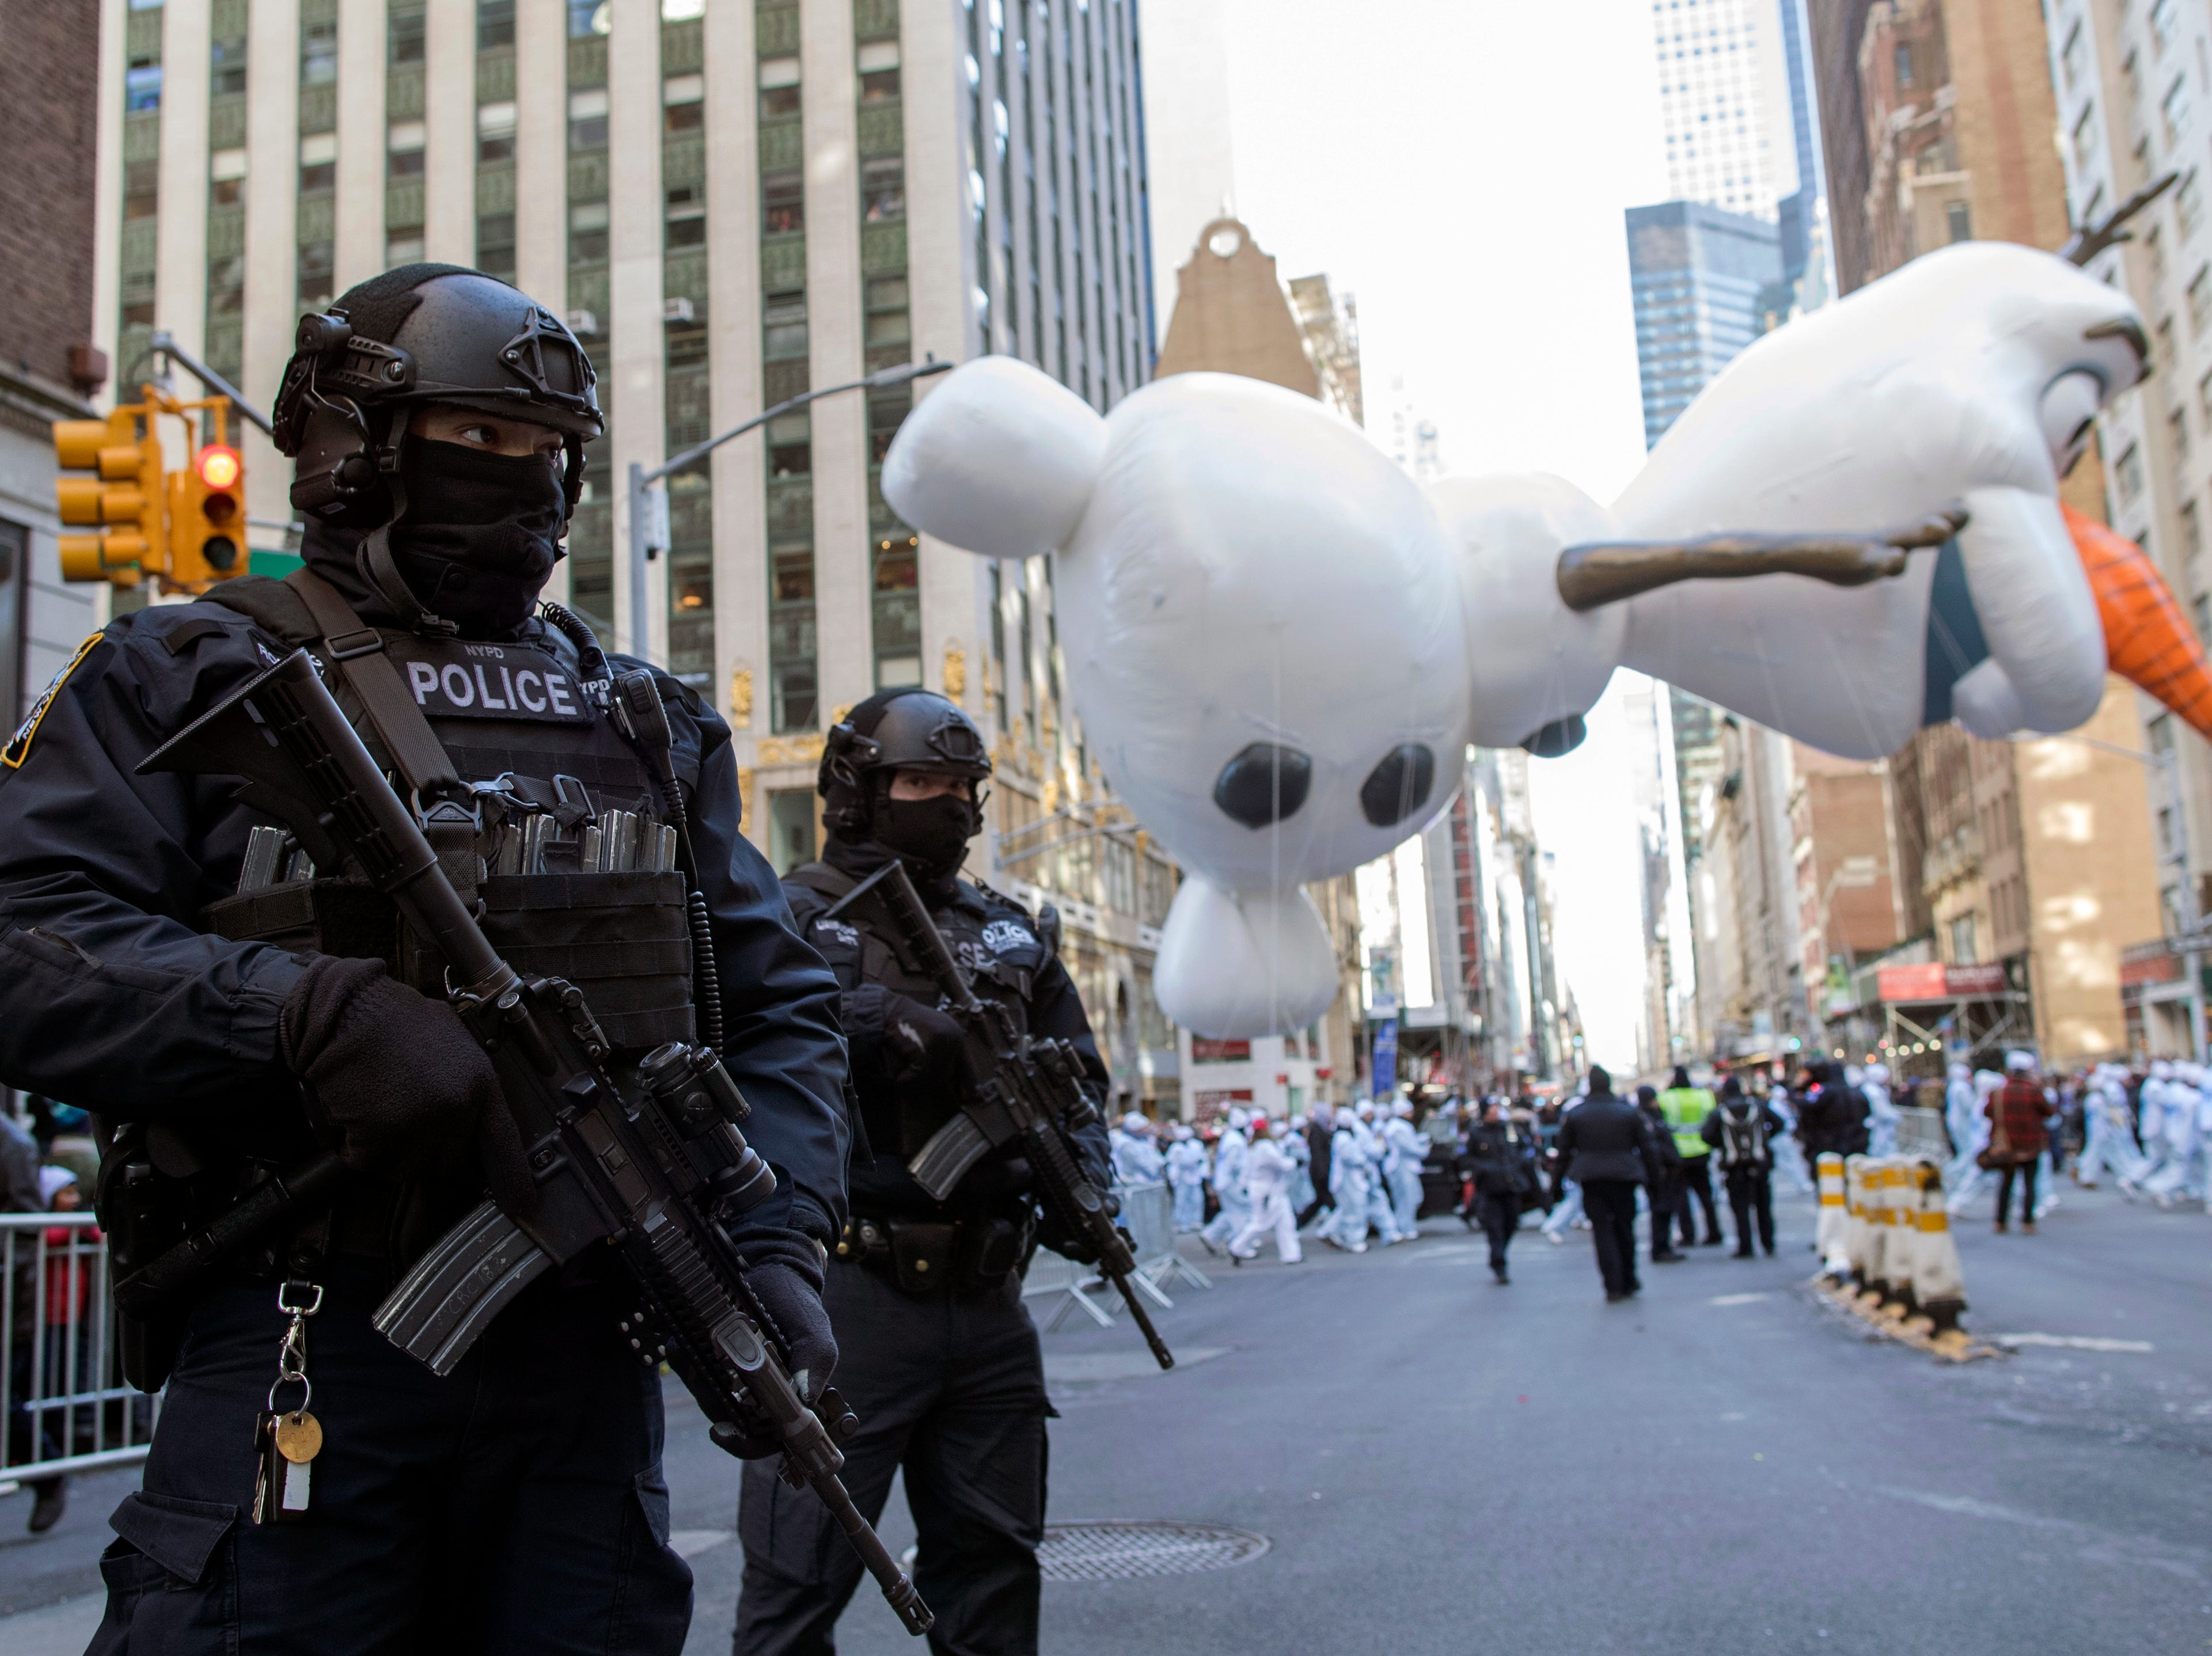 Heavily-armed police officers stand guard as the Olaf balloon floats down 6th Avenue during the 92nd annual Macy's Thanksgiving Day Parade, Nov. 22, 2018, in New York.